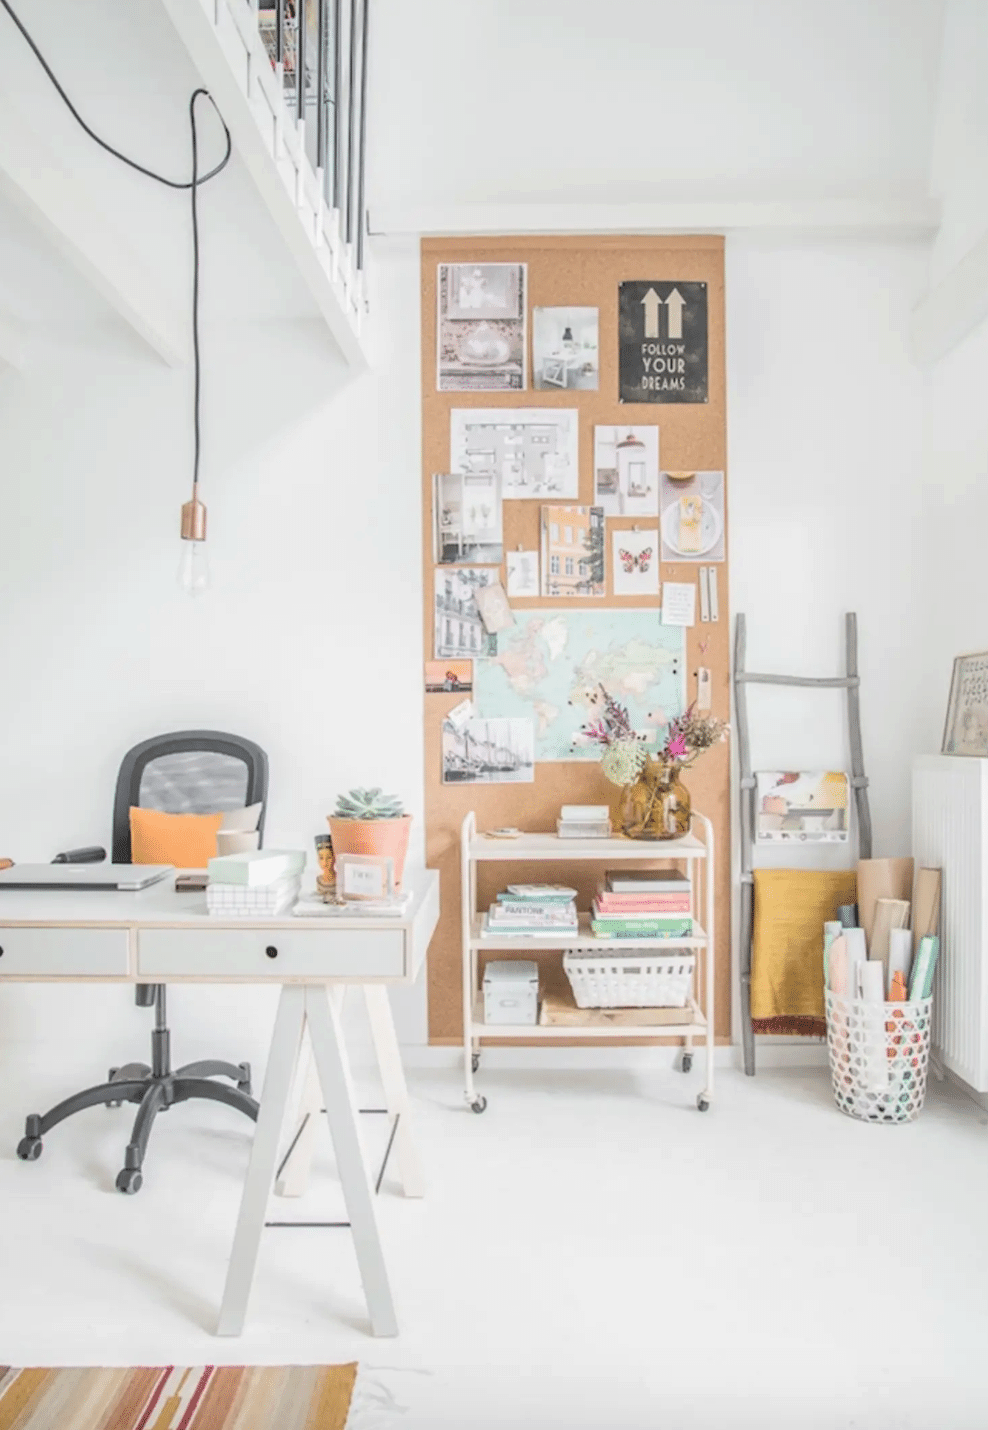 Inspiration board from Apartment Therapy